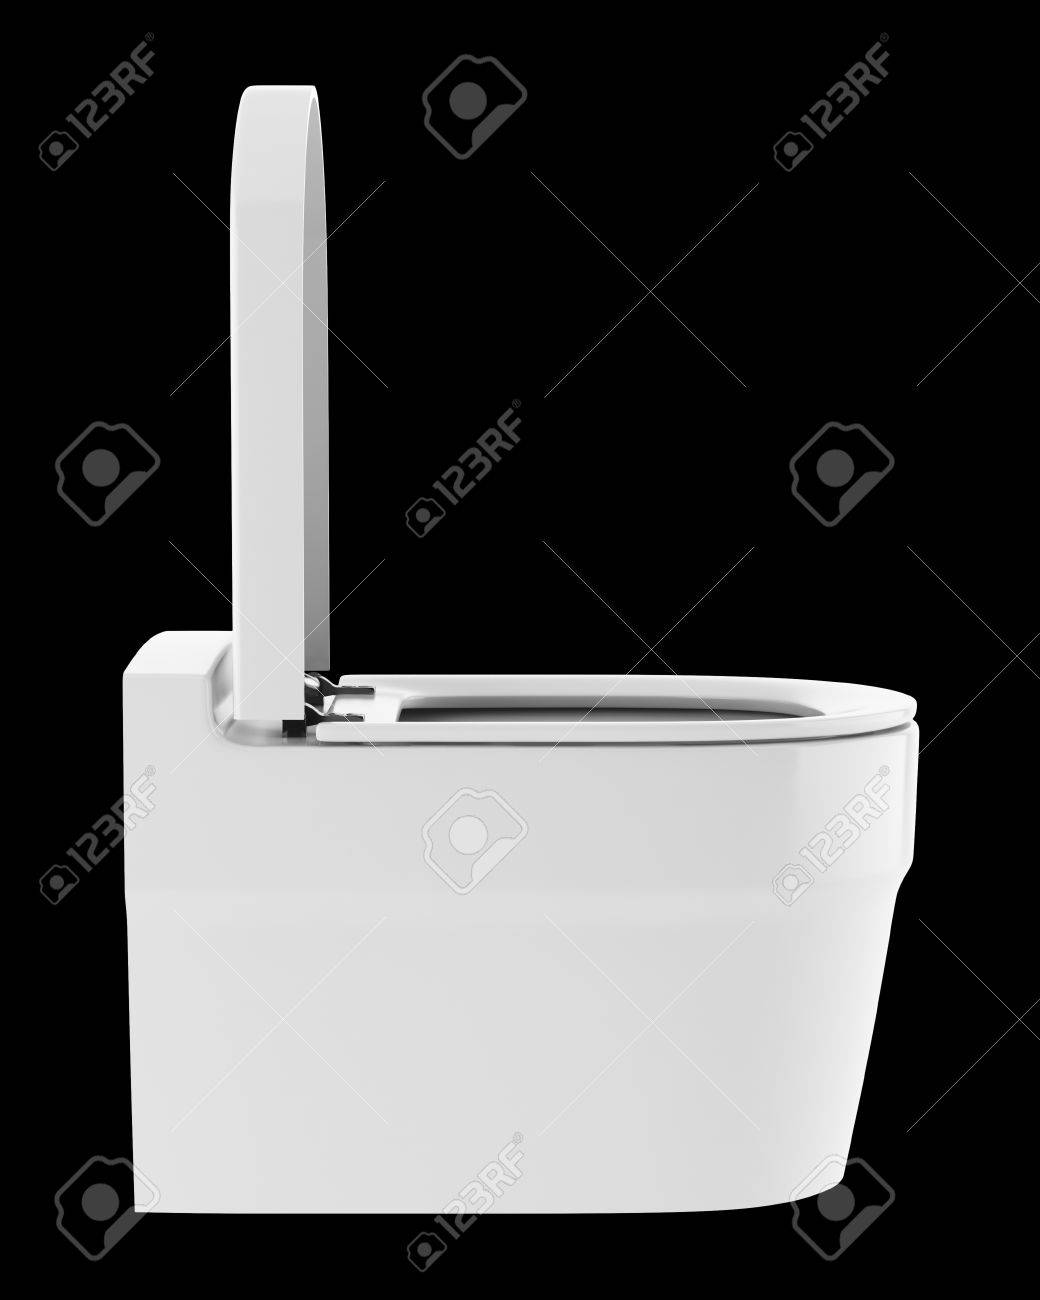 single modern toilet bowl isolated on black background stock photo  - stock photo  single modern toilet bowl isolated on black background